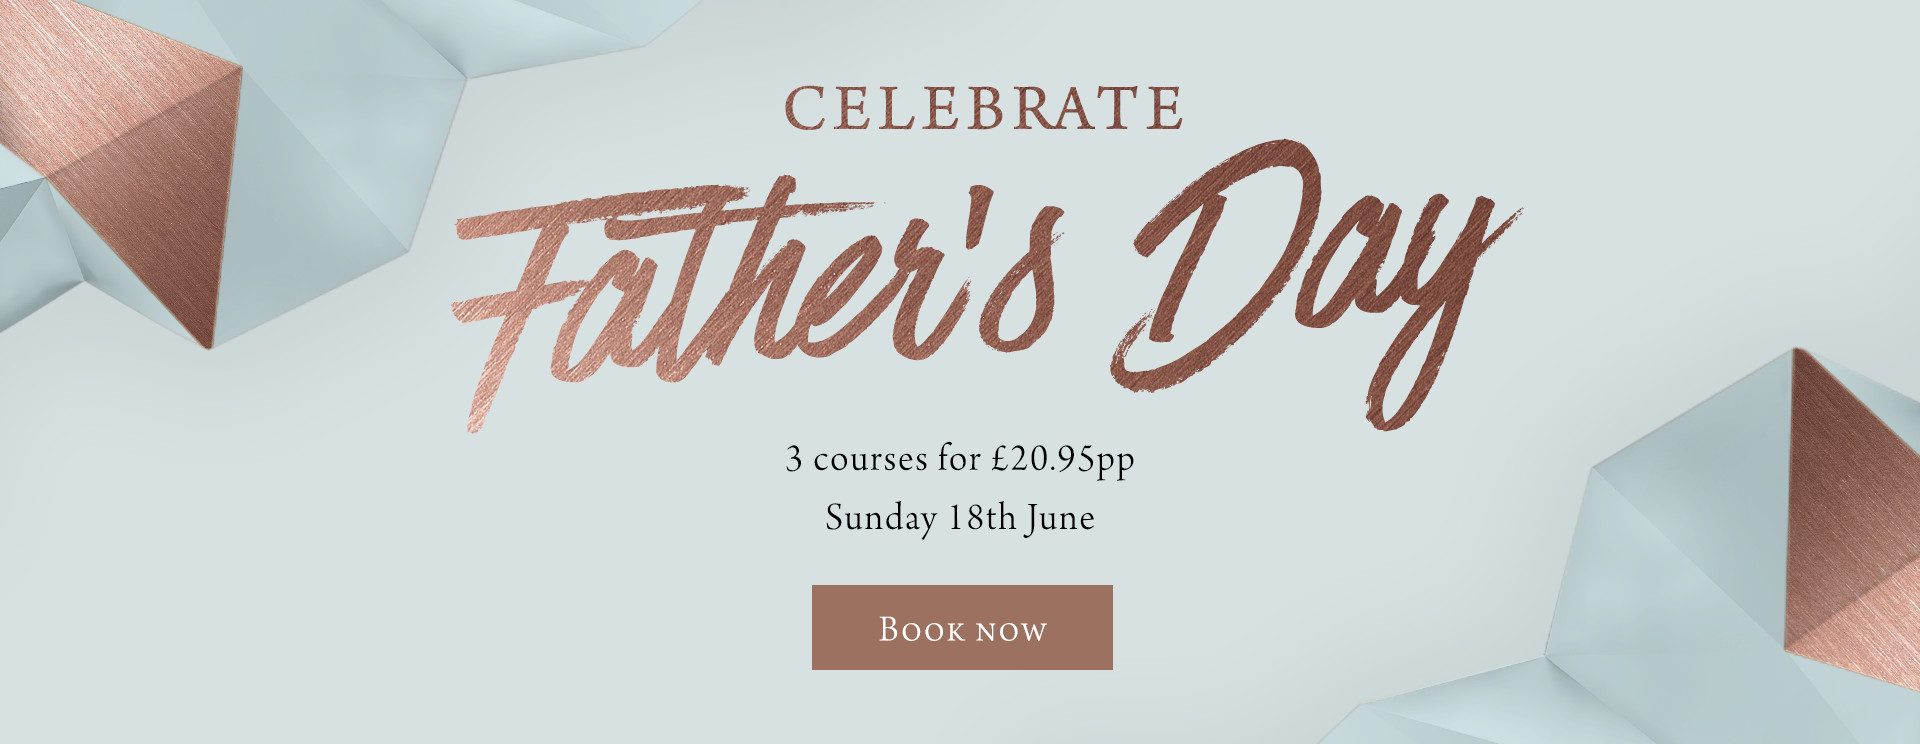 Father's Day at The Coombe Cellars - Book now